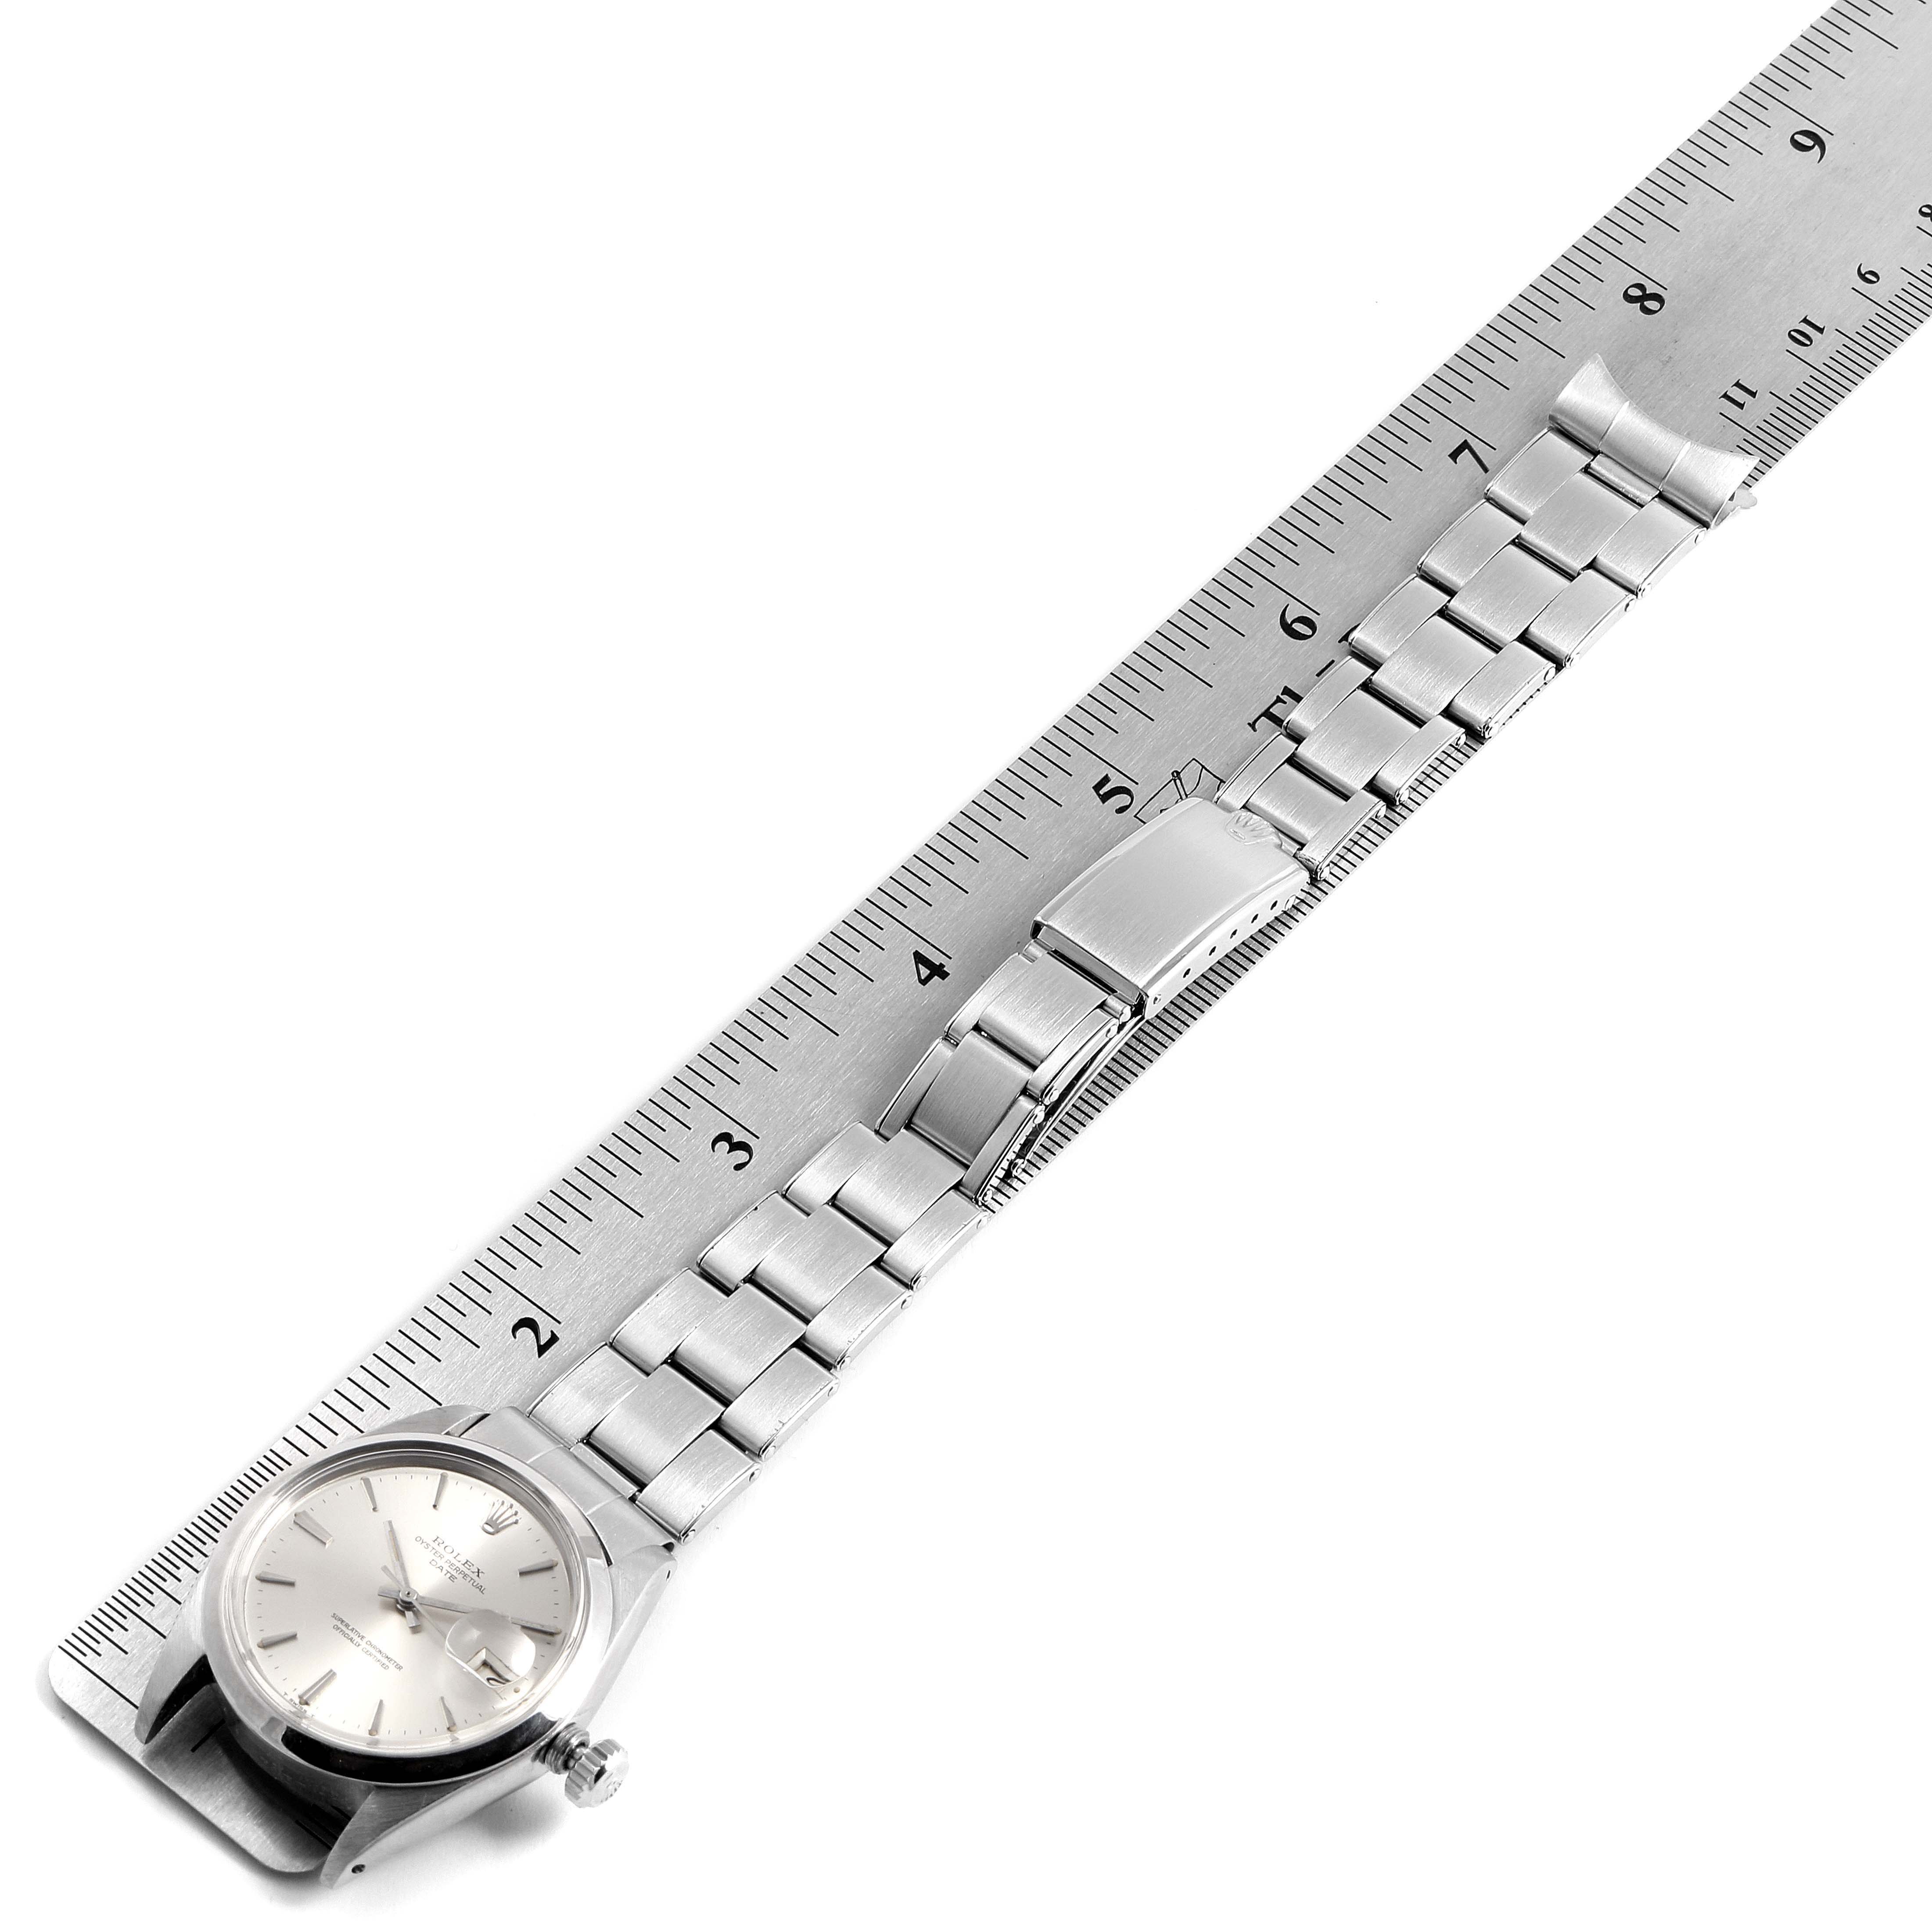 Rolex Date Stainless Steel Silver Dial Vintage Mens Watch 1500 SwissWatchExpo